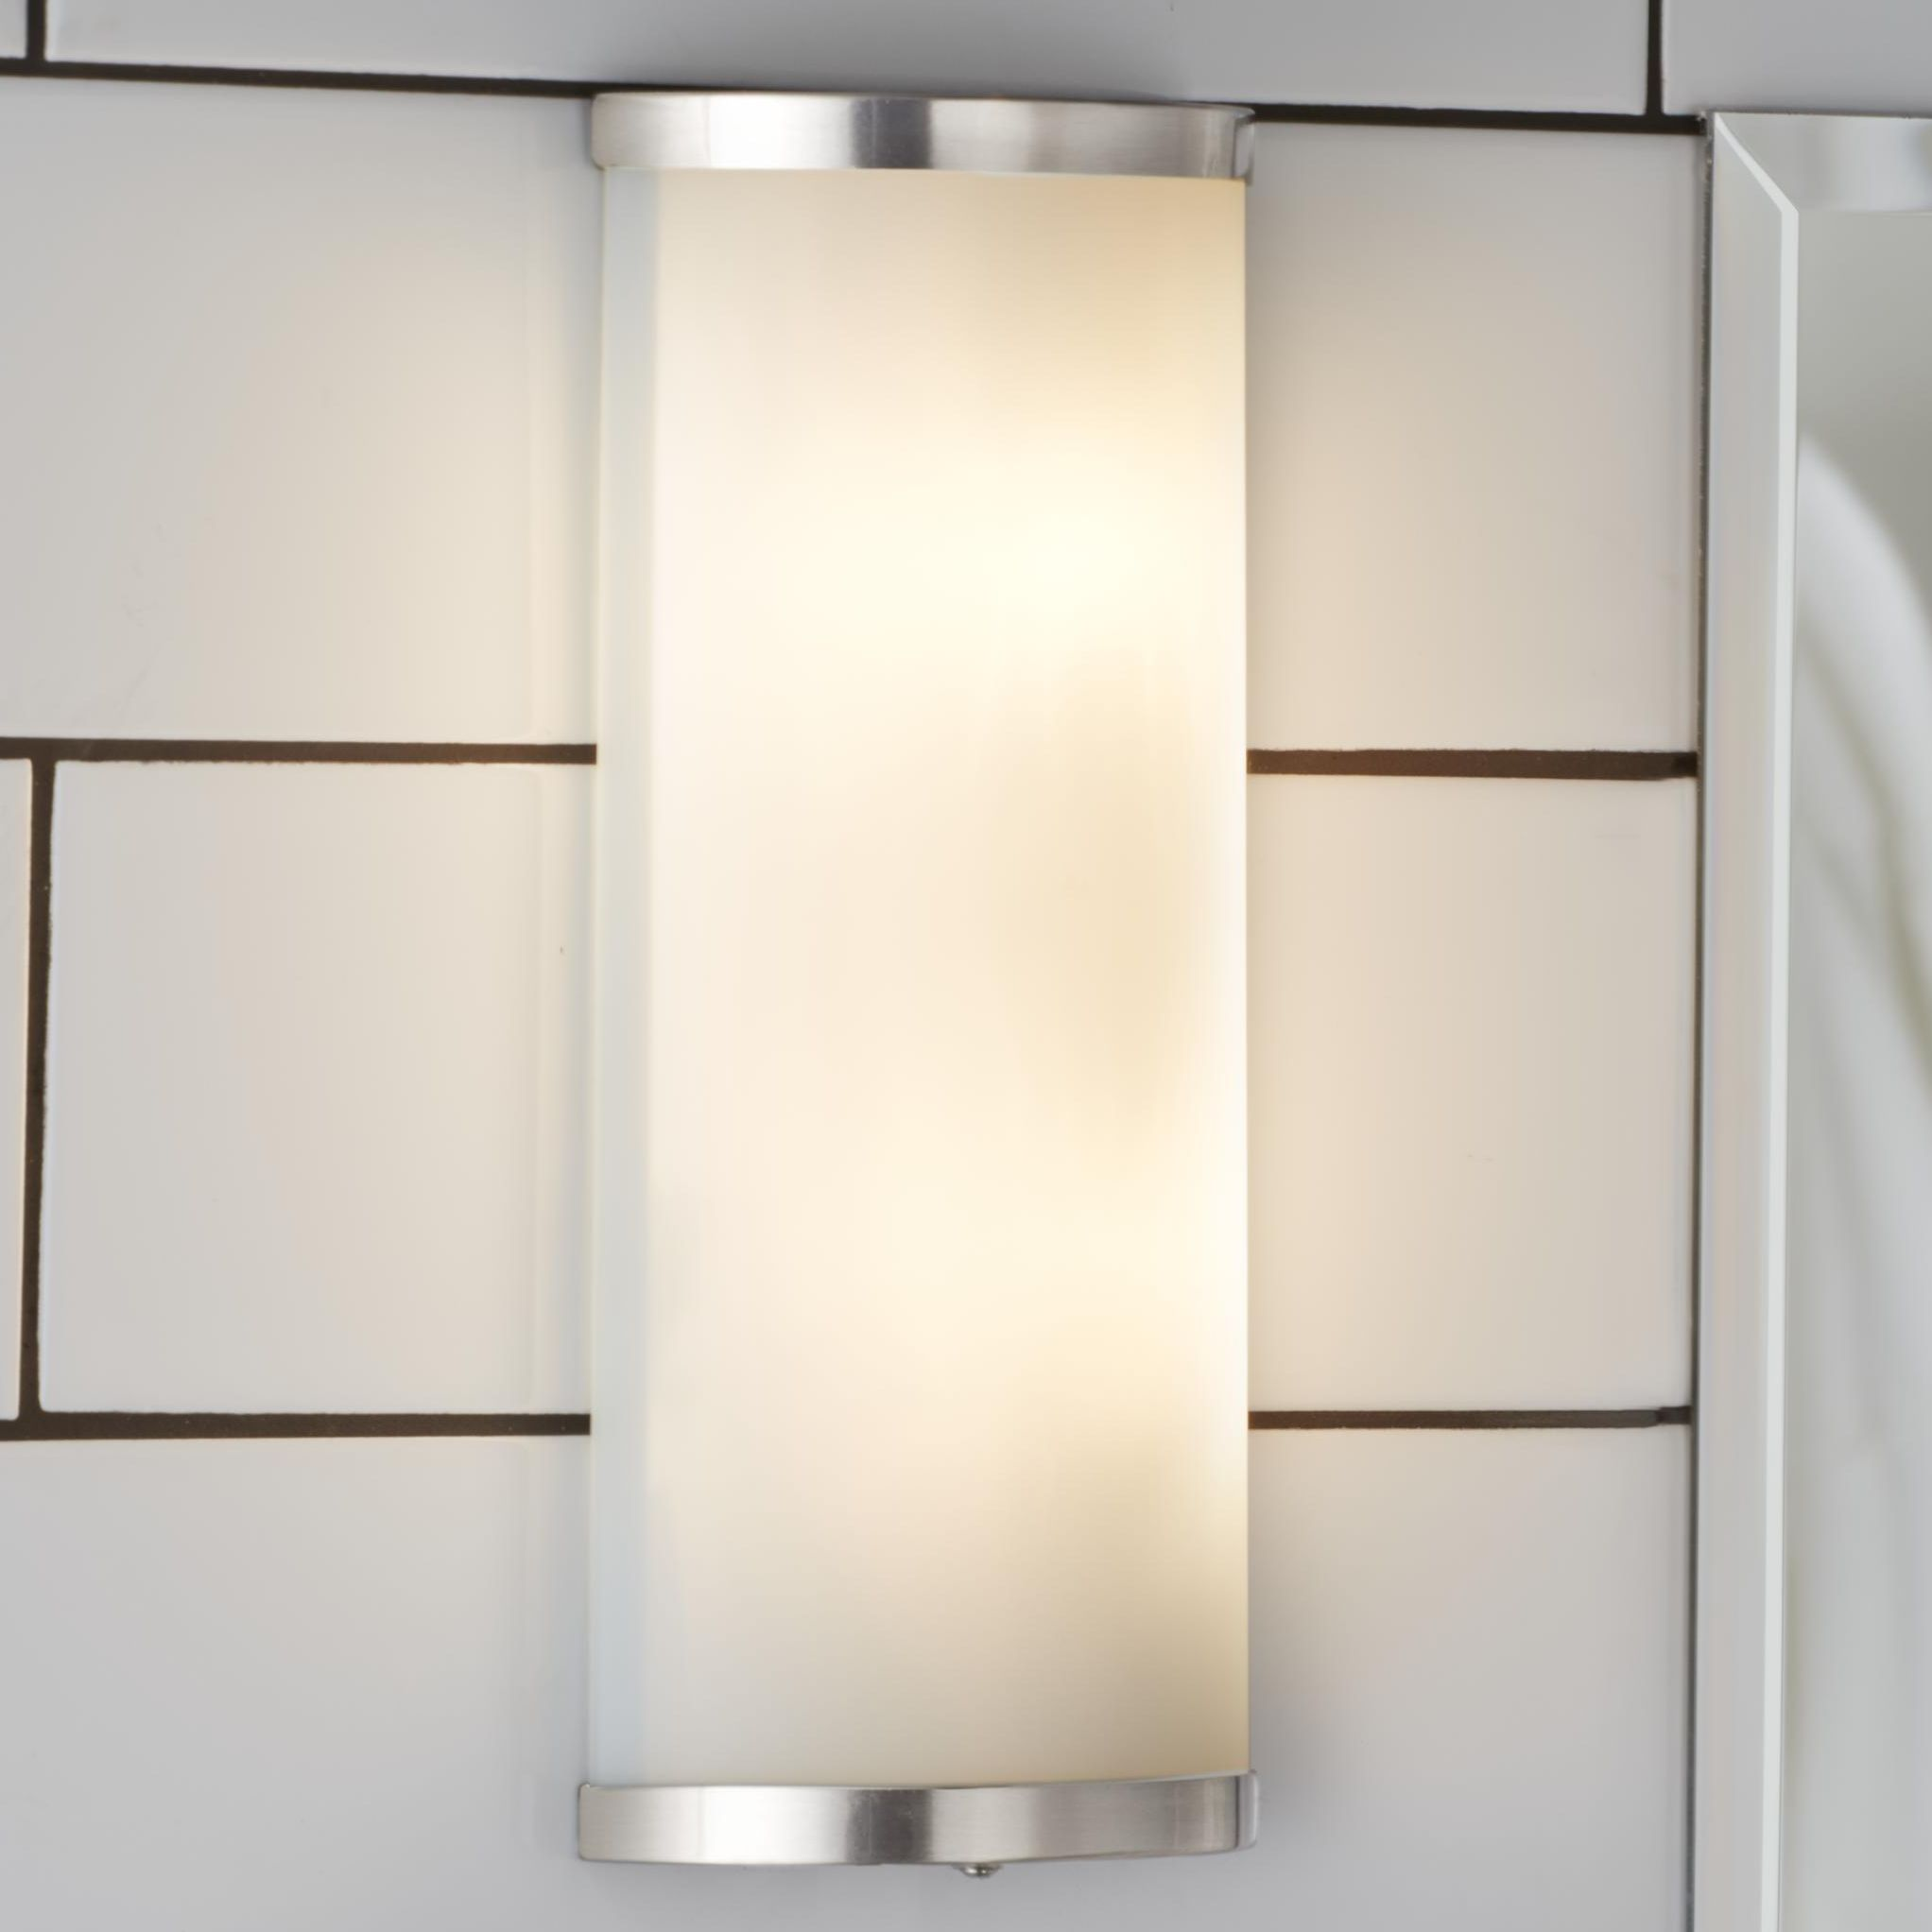 Bathroom Lights Flush Lights Amp Downlights Diy At B Amp Q